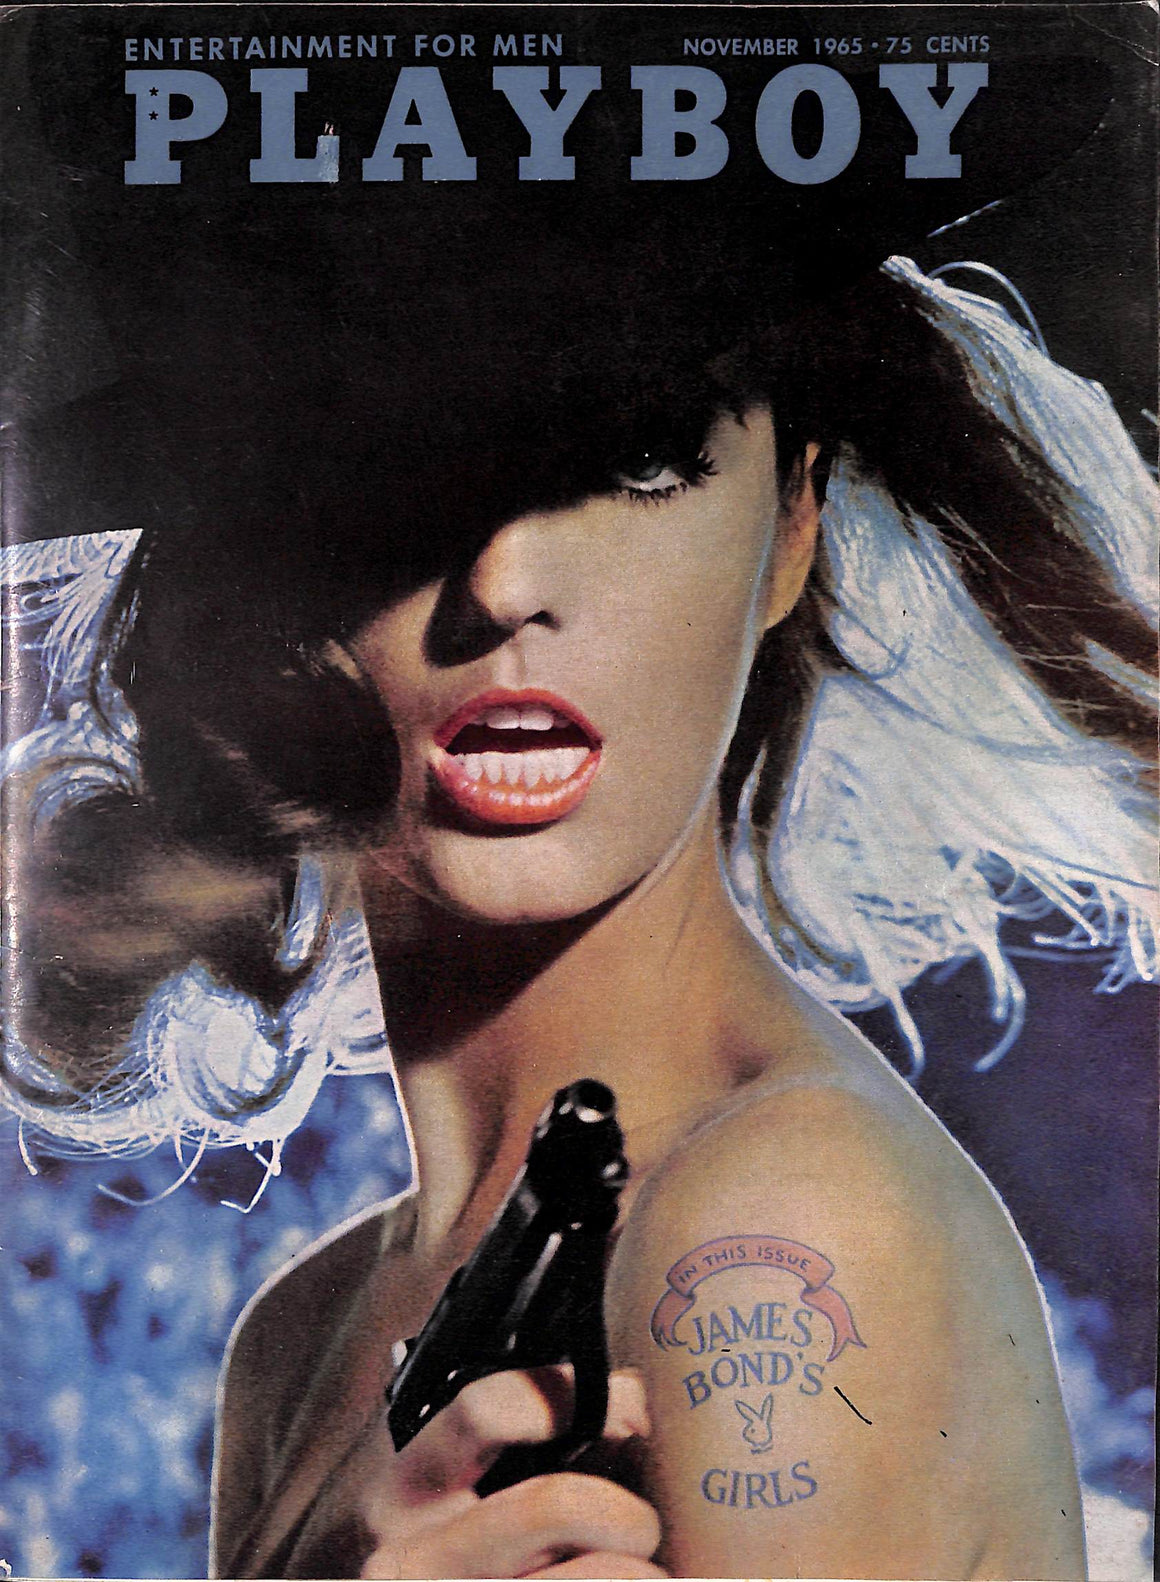 Playboy 'James Bond's Girls' Nov 1965 w/ Honor Blackman et al. (Sold!)